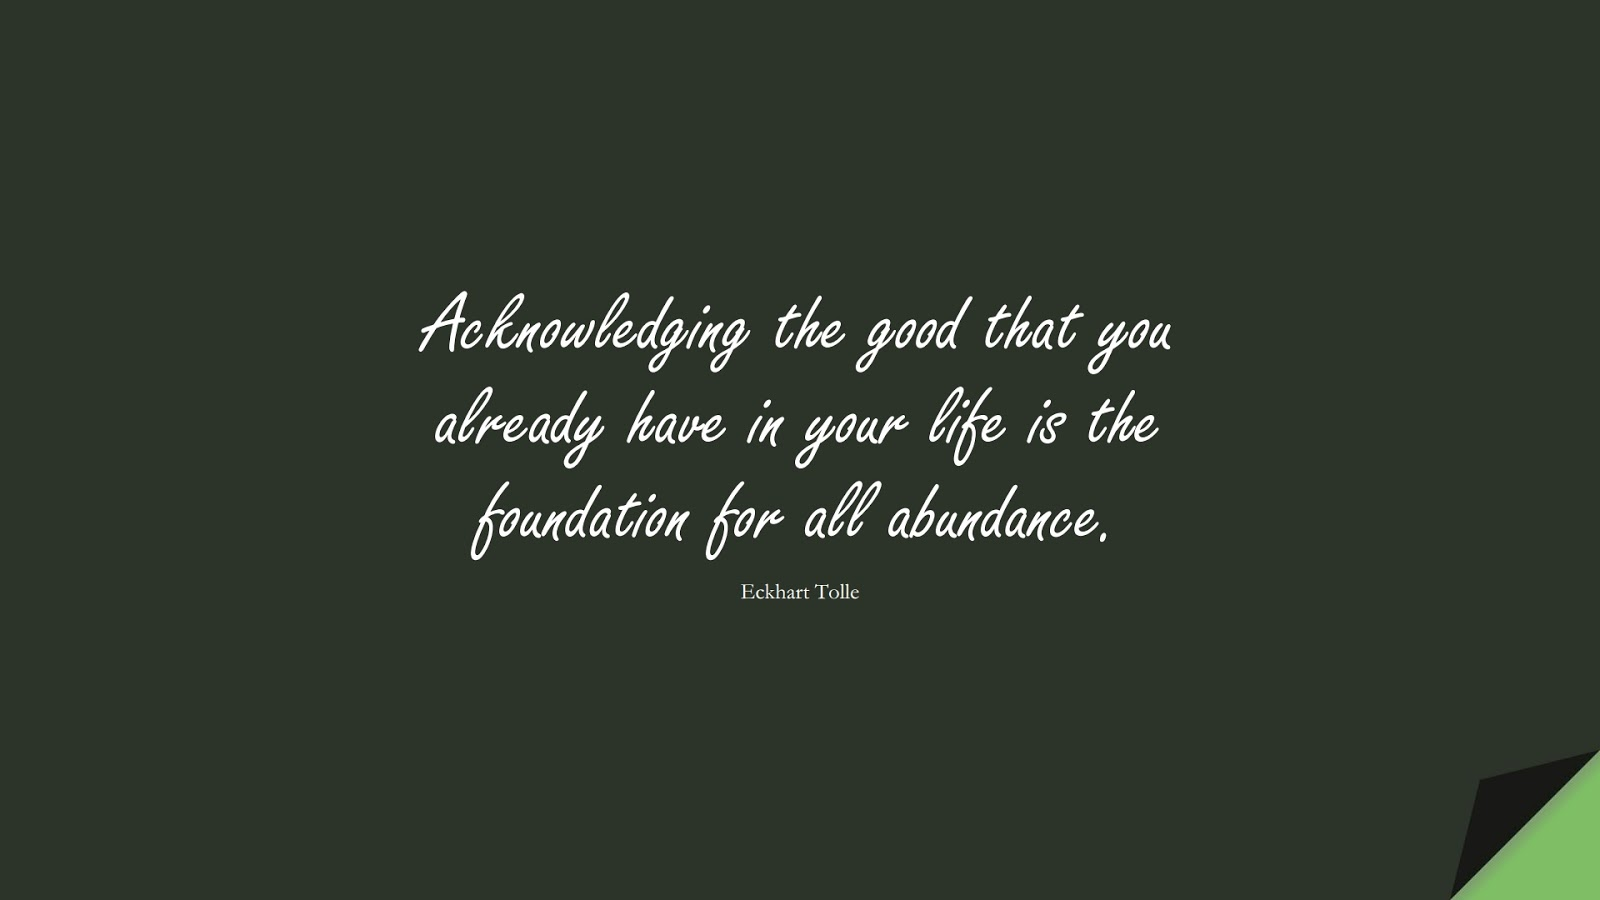 Acknowledging the good that you already have in your life is the foundation for all abundance. (Eckhart Tolle);  #MoneyQuotes